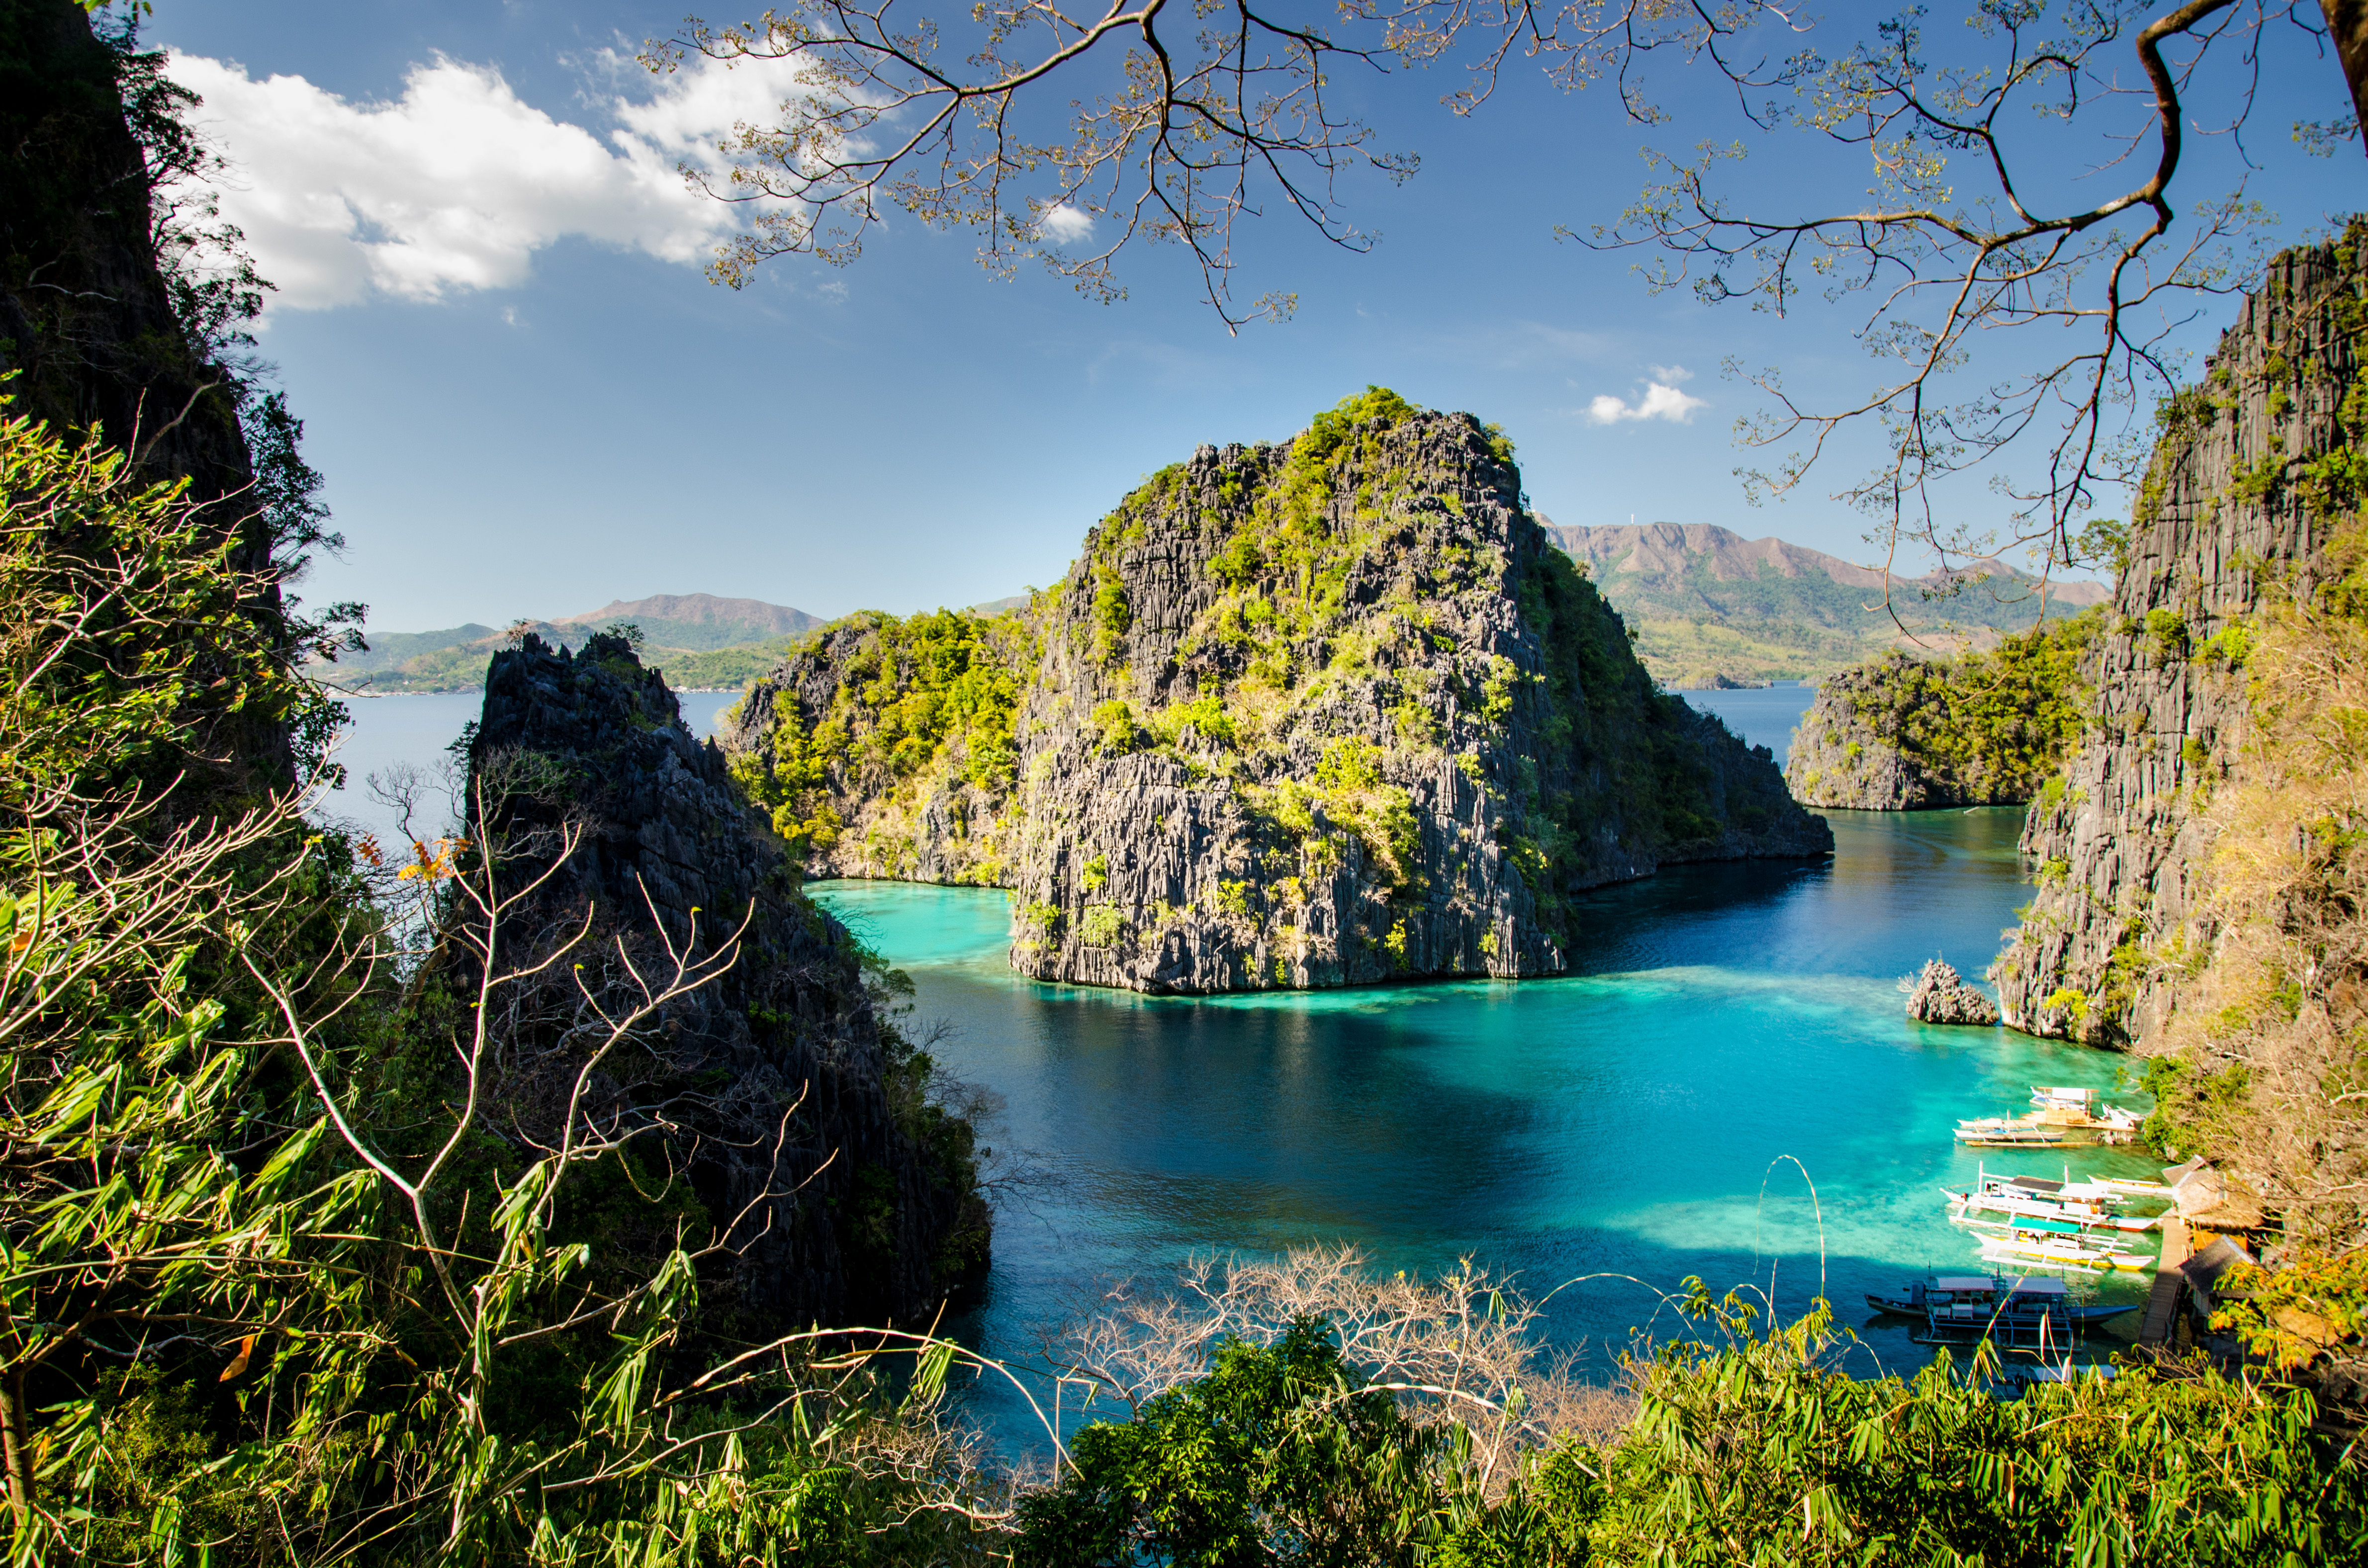 travel, travel hotspots, Philippines beaches, Hong Kong short breaks, Phillipines holidays